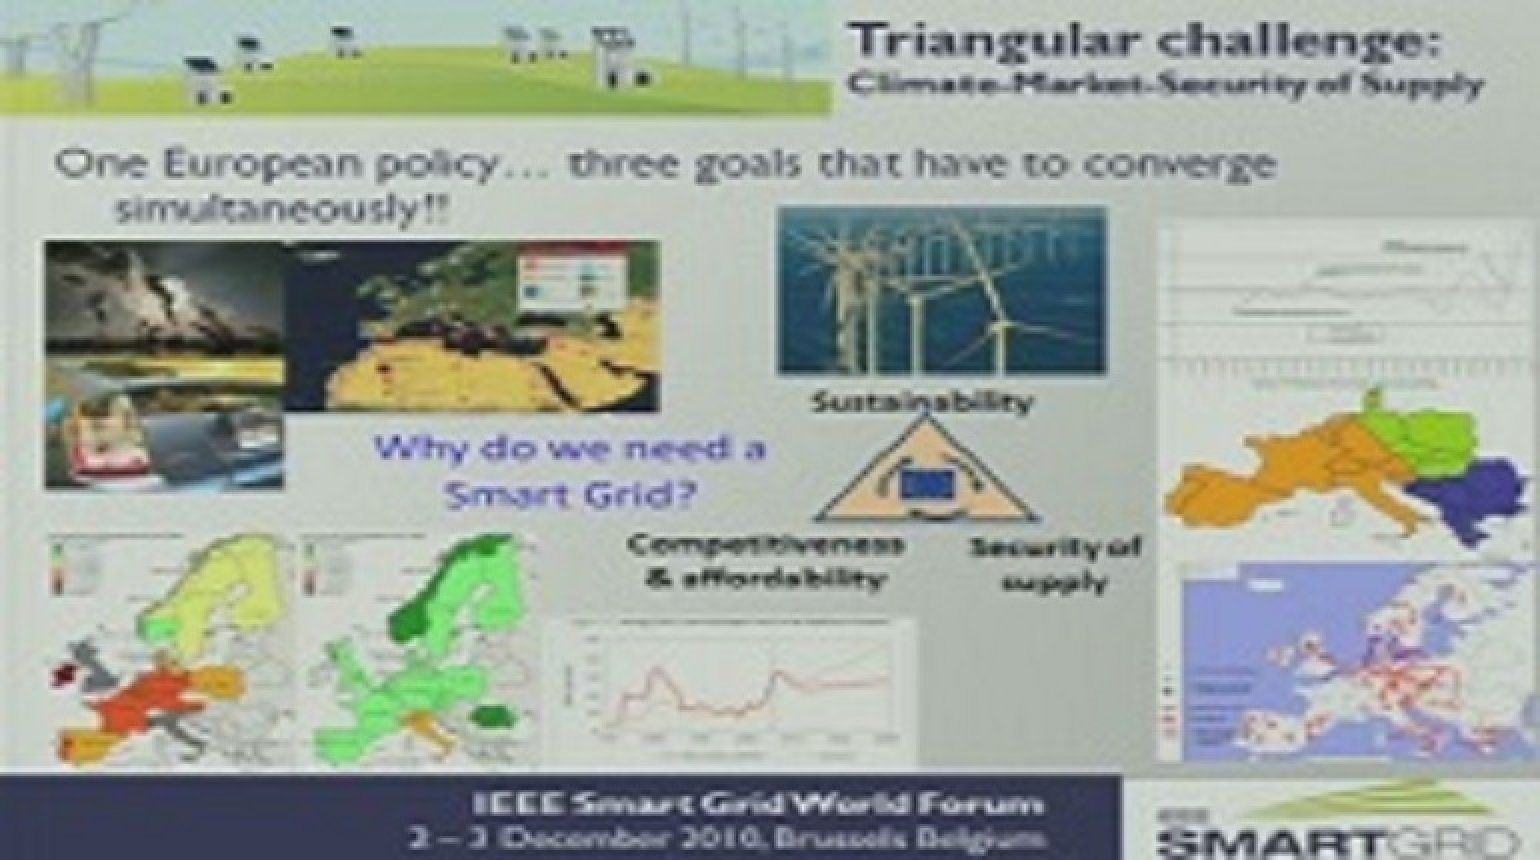 IEEE Smart Grid World Forum - Ronnie Belmans